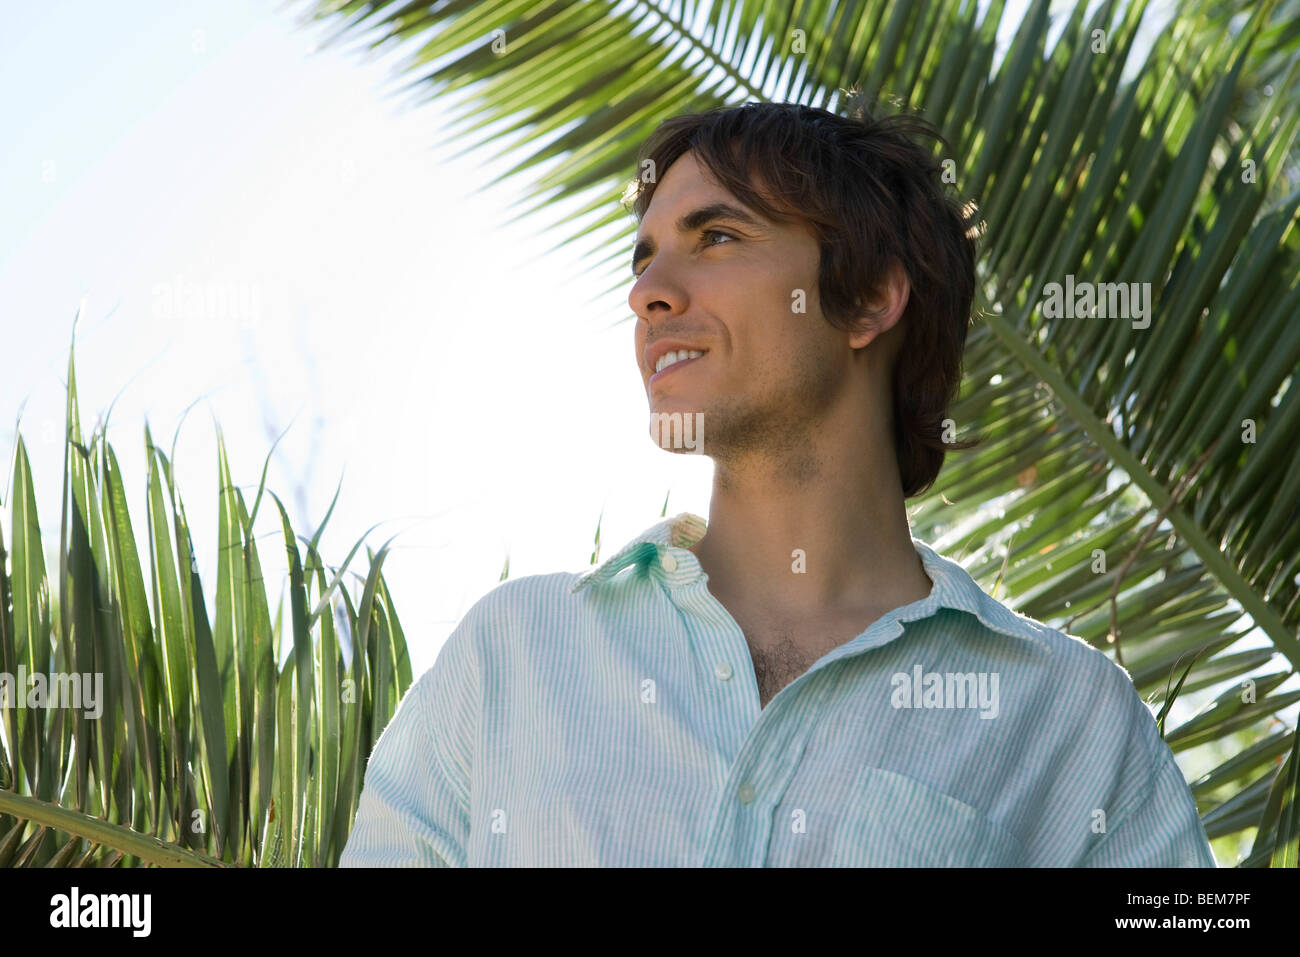 Man looking away, smiling, palm fronds in background - Stock Image